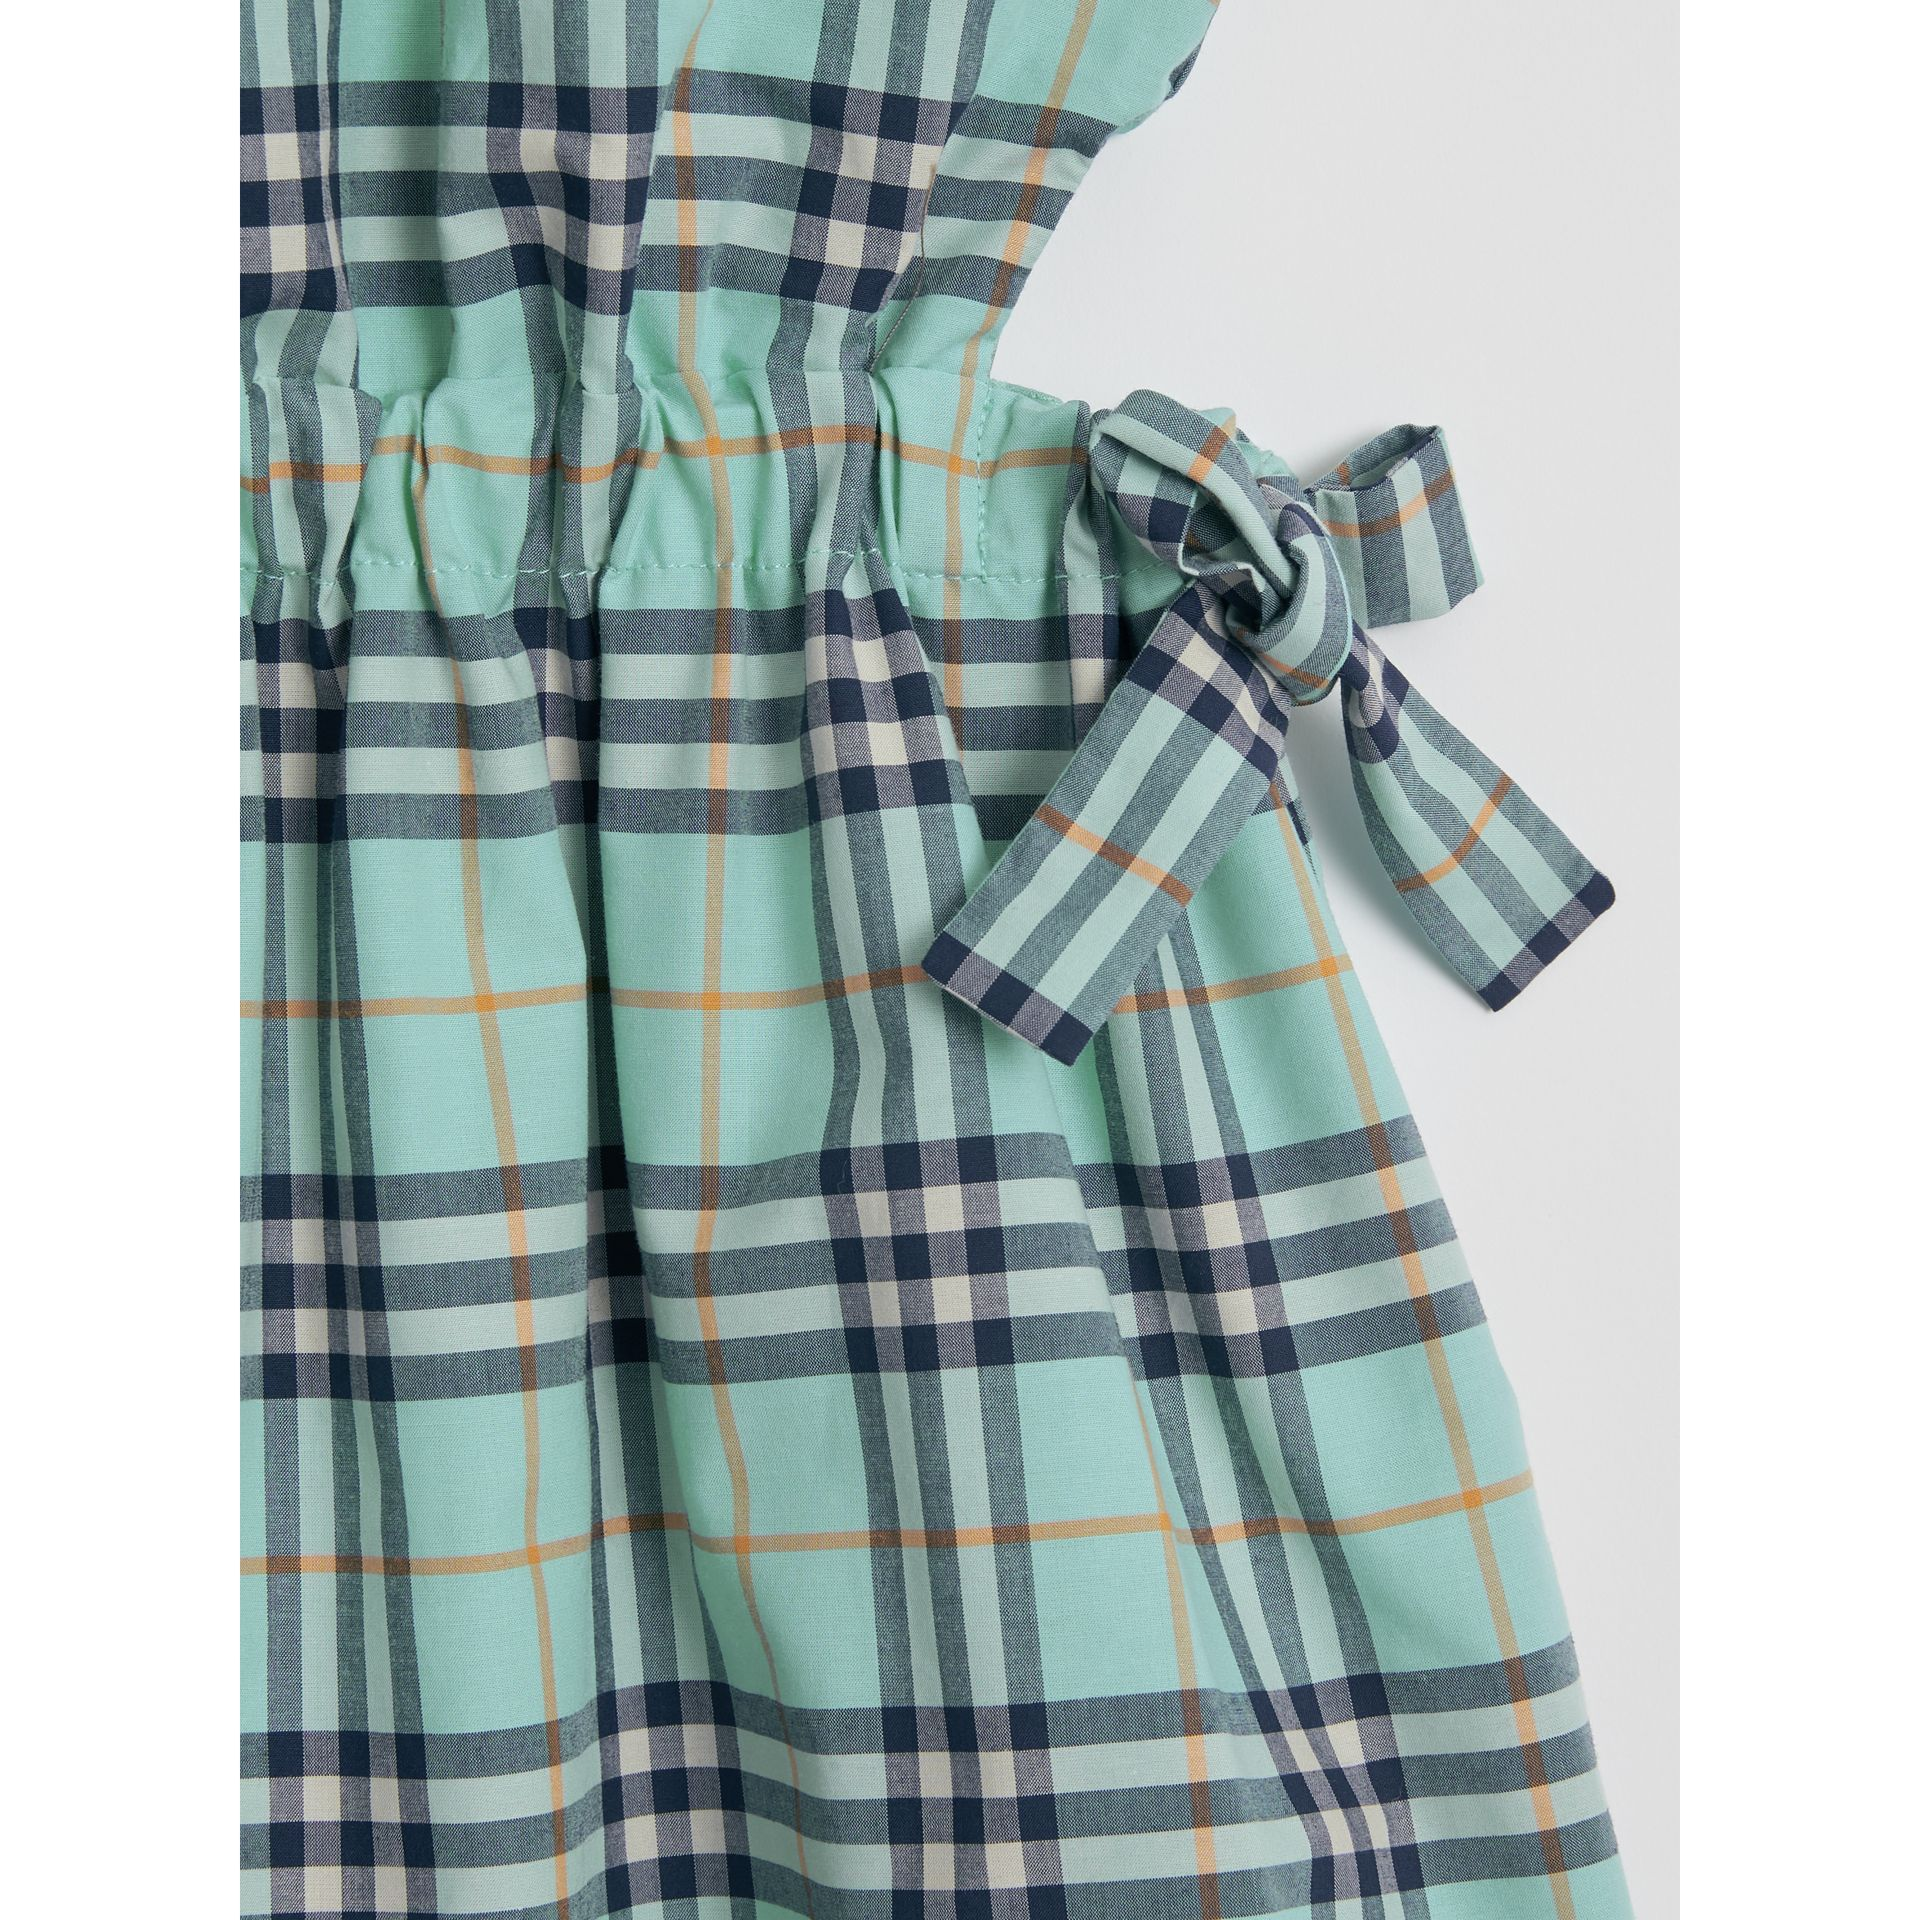 Tie Detail Check Cotton Dress in Bright Aqua - Girl | Burberry Singapore - gallery image 1